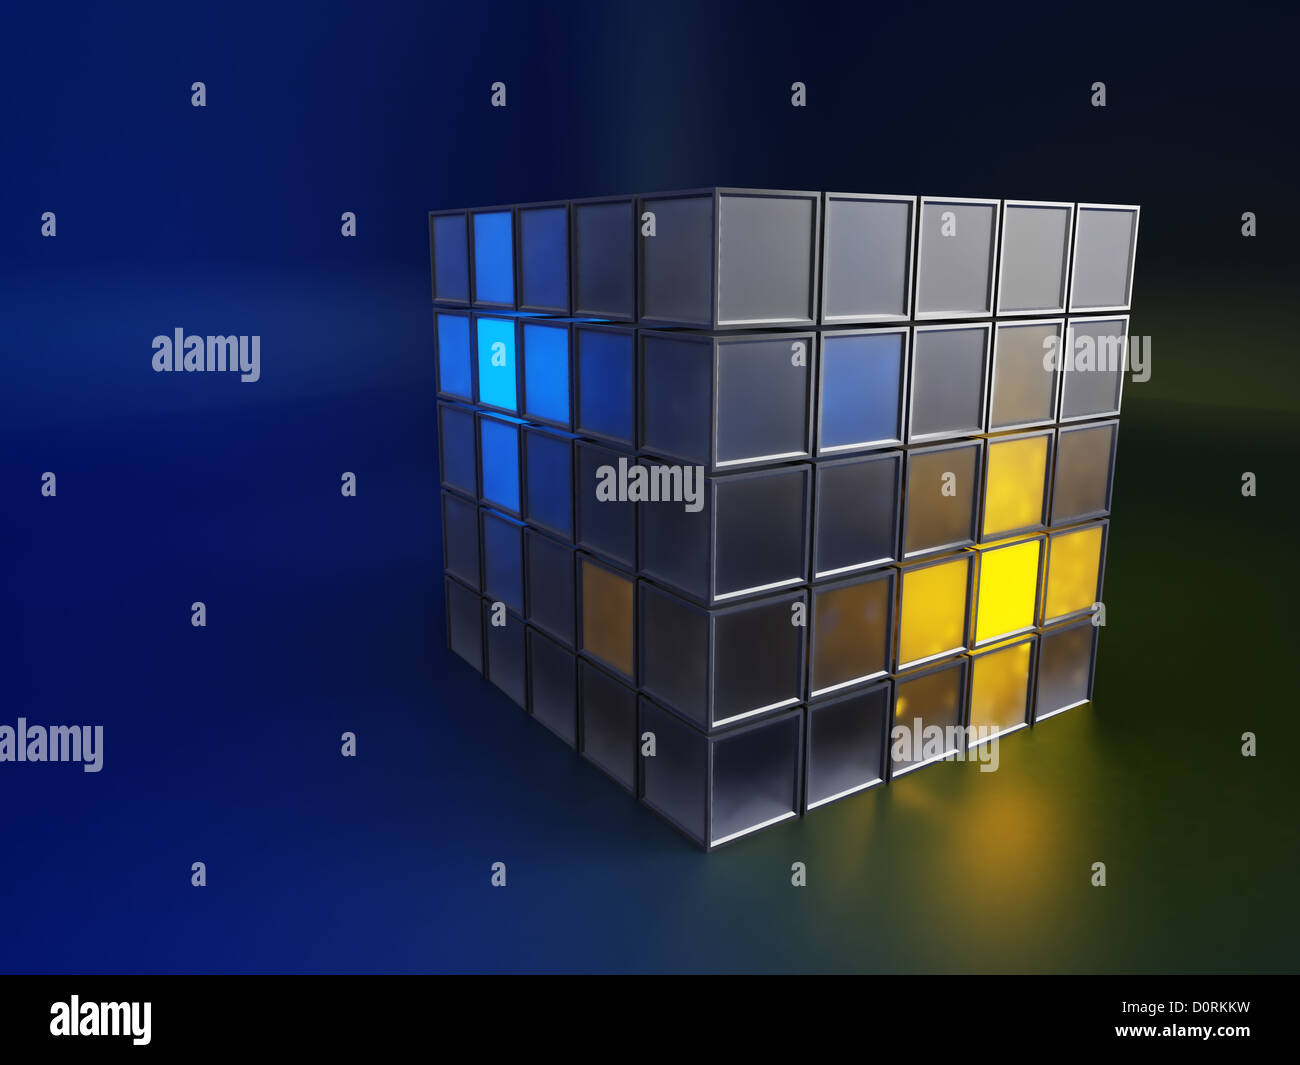 Metallic and glowing boxes - Stock Image